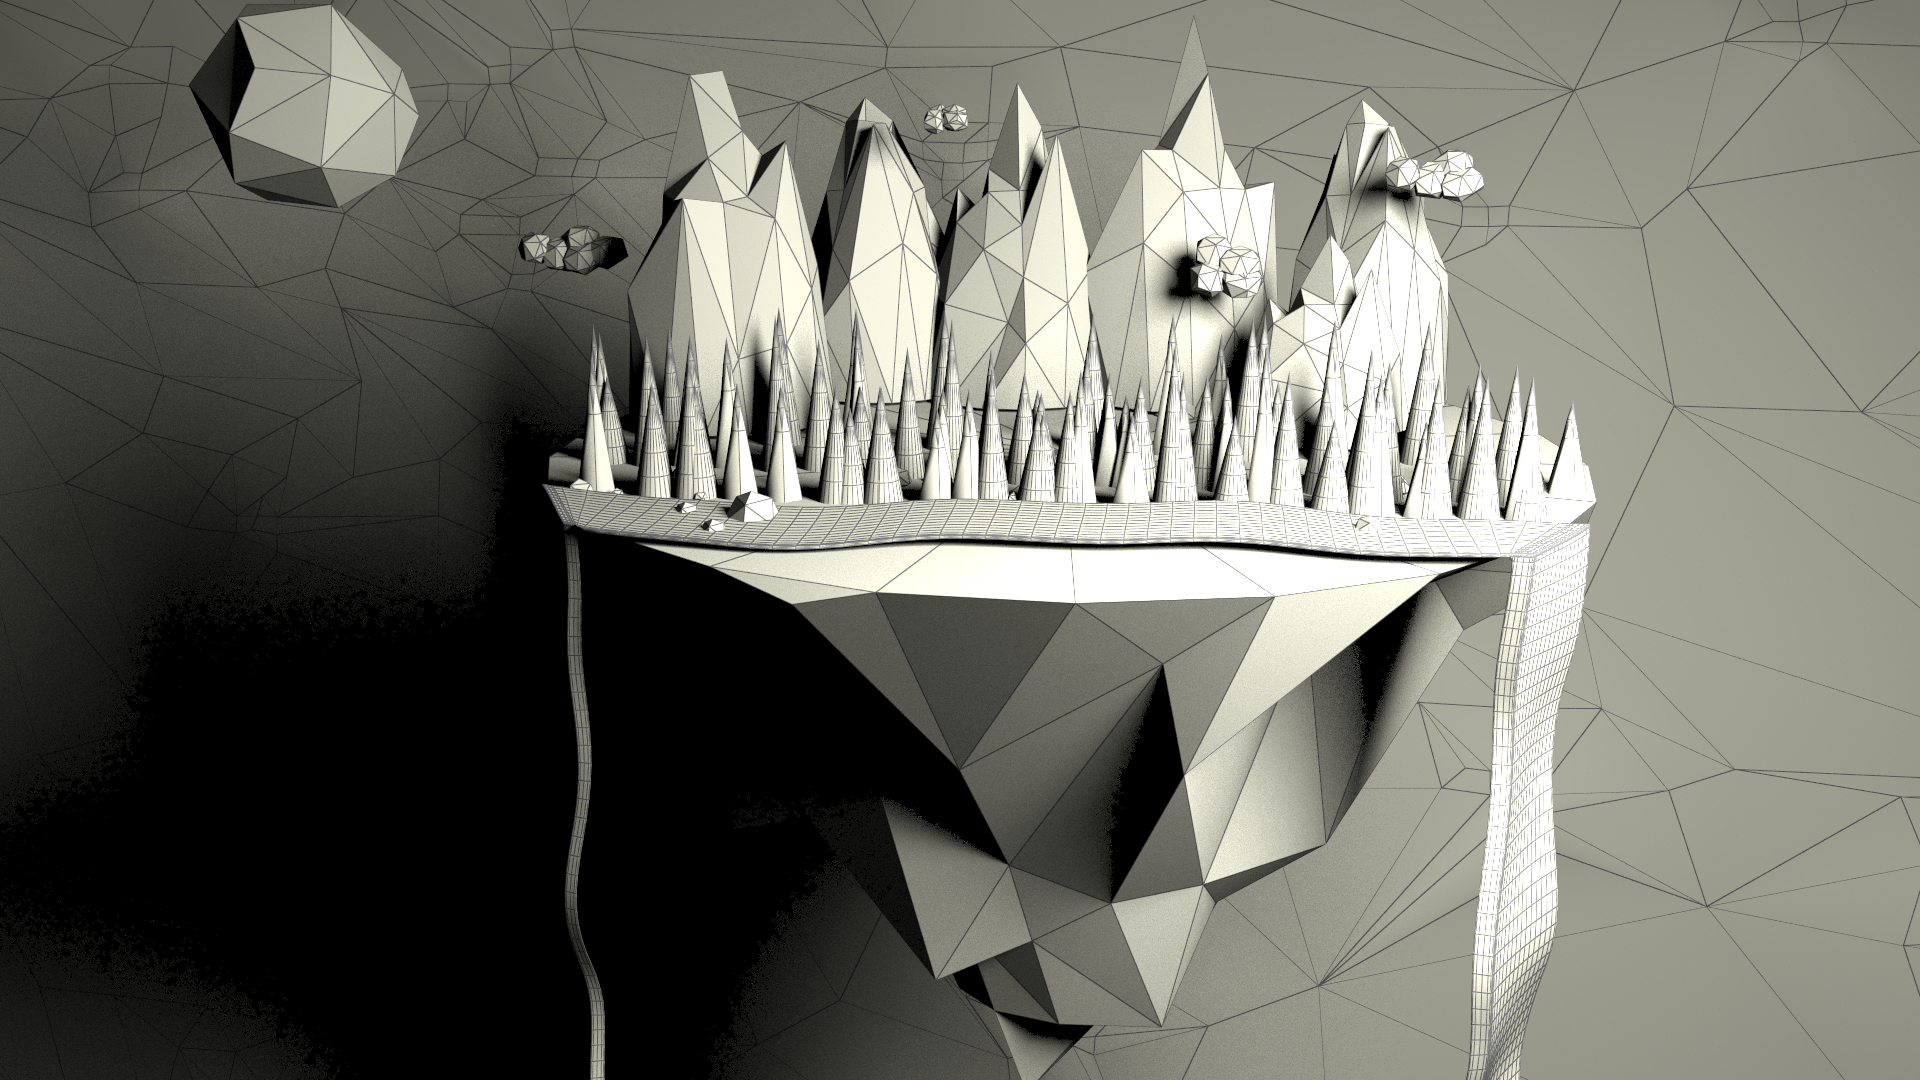 MOUNTAINS WIREFRAME ON SHADED